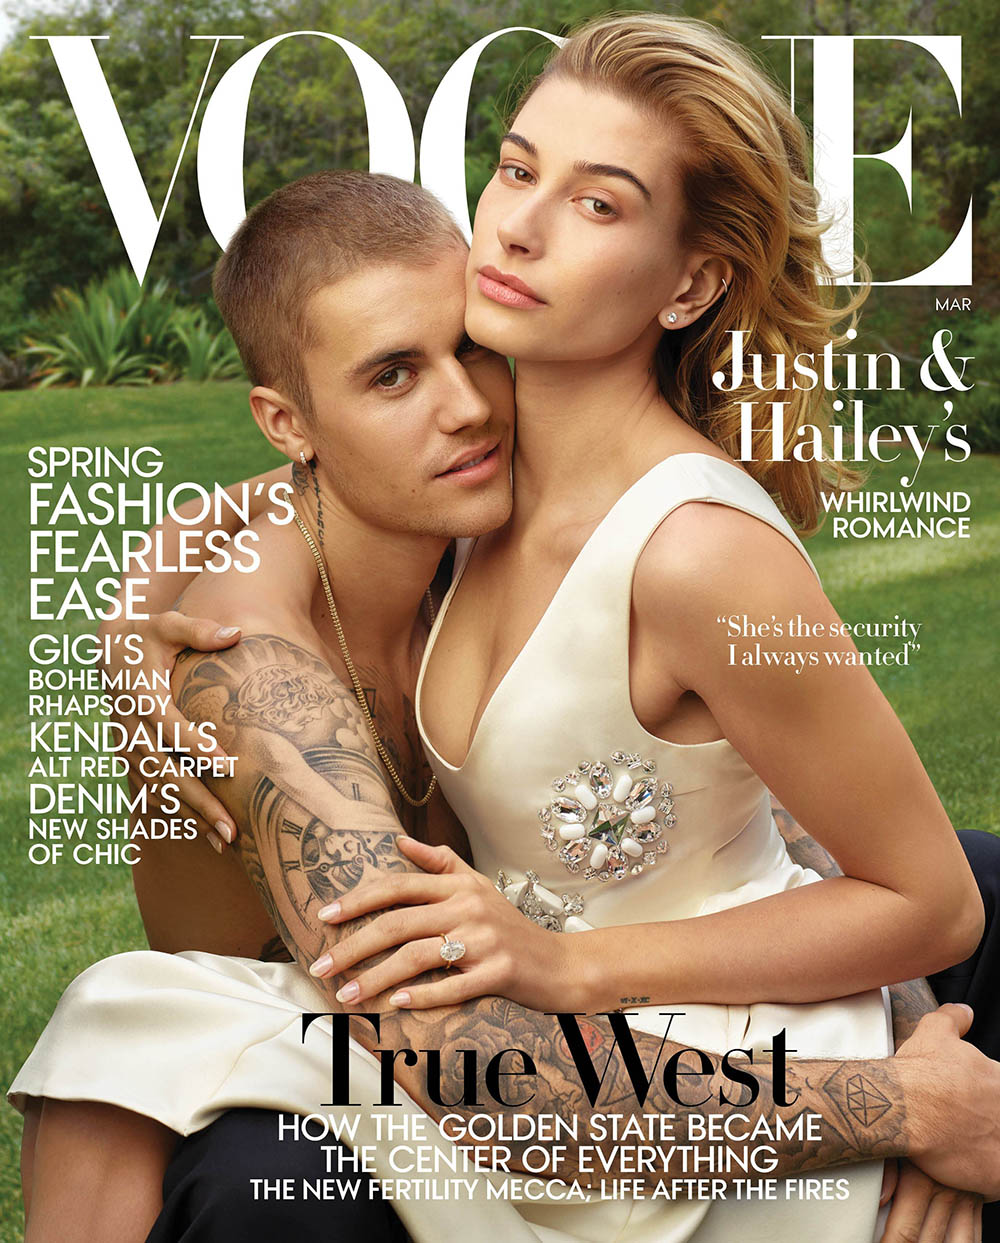 Justin and Hailey Bieber cover Vogue US March 2019 by Annie Leibovitz